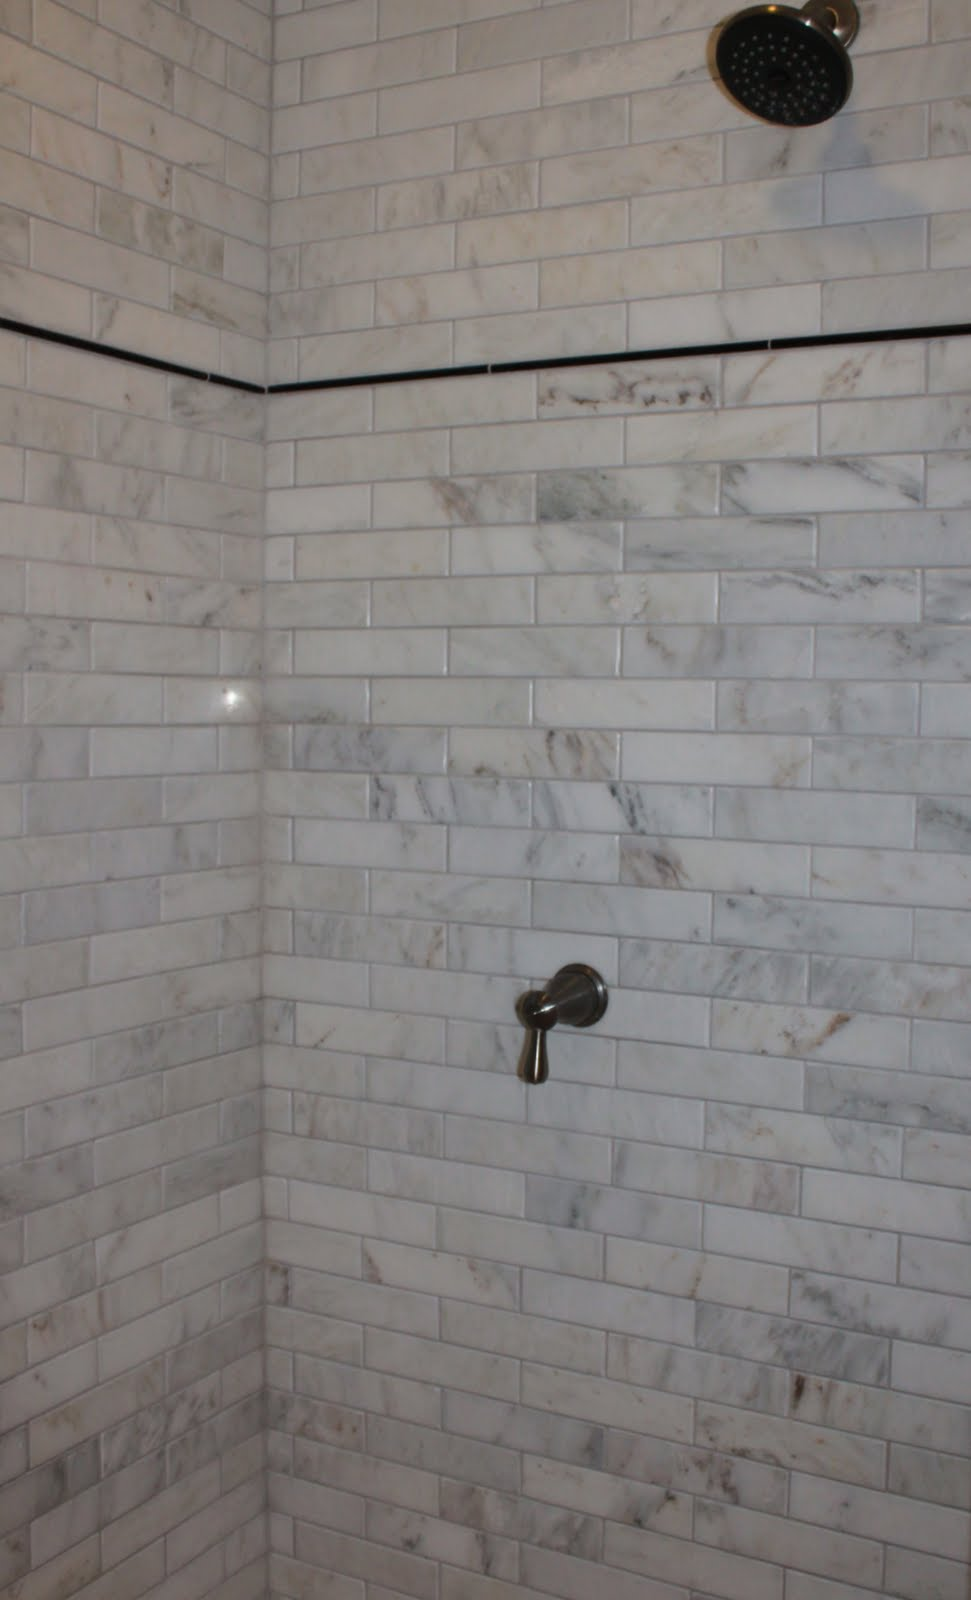 Marble Subway Tile Shower Offering the Sense of Elegance | HomesFeed